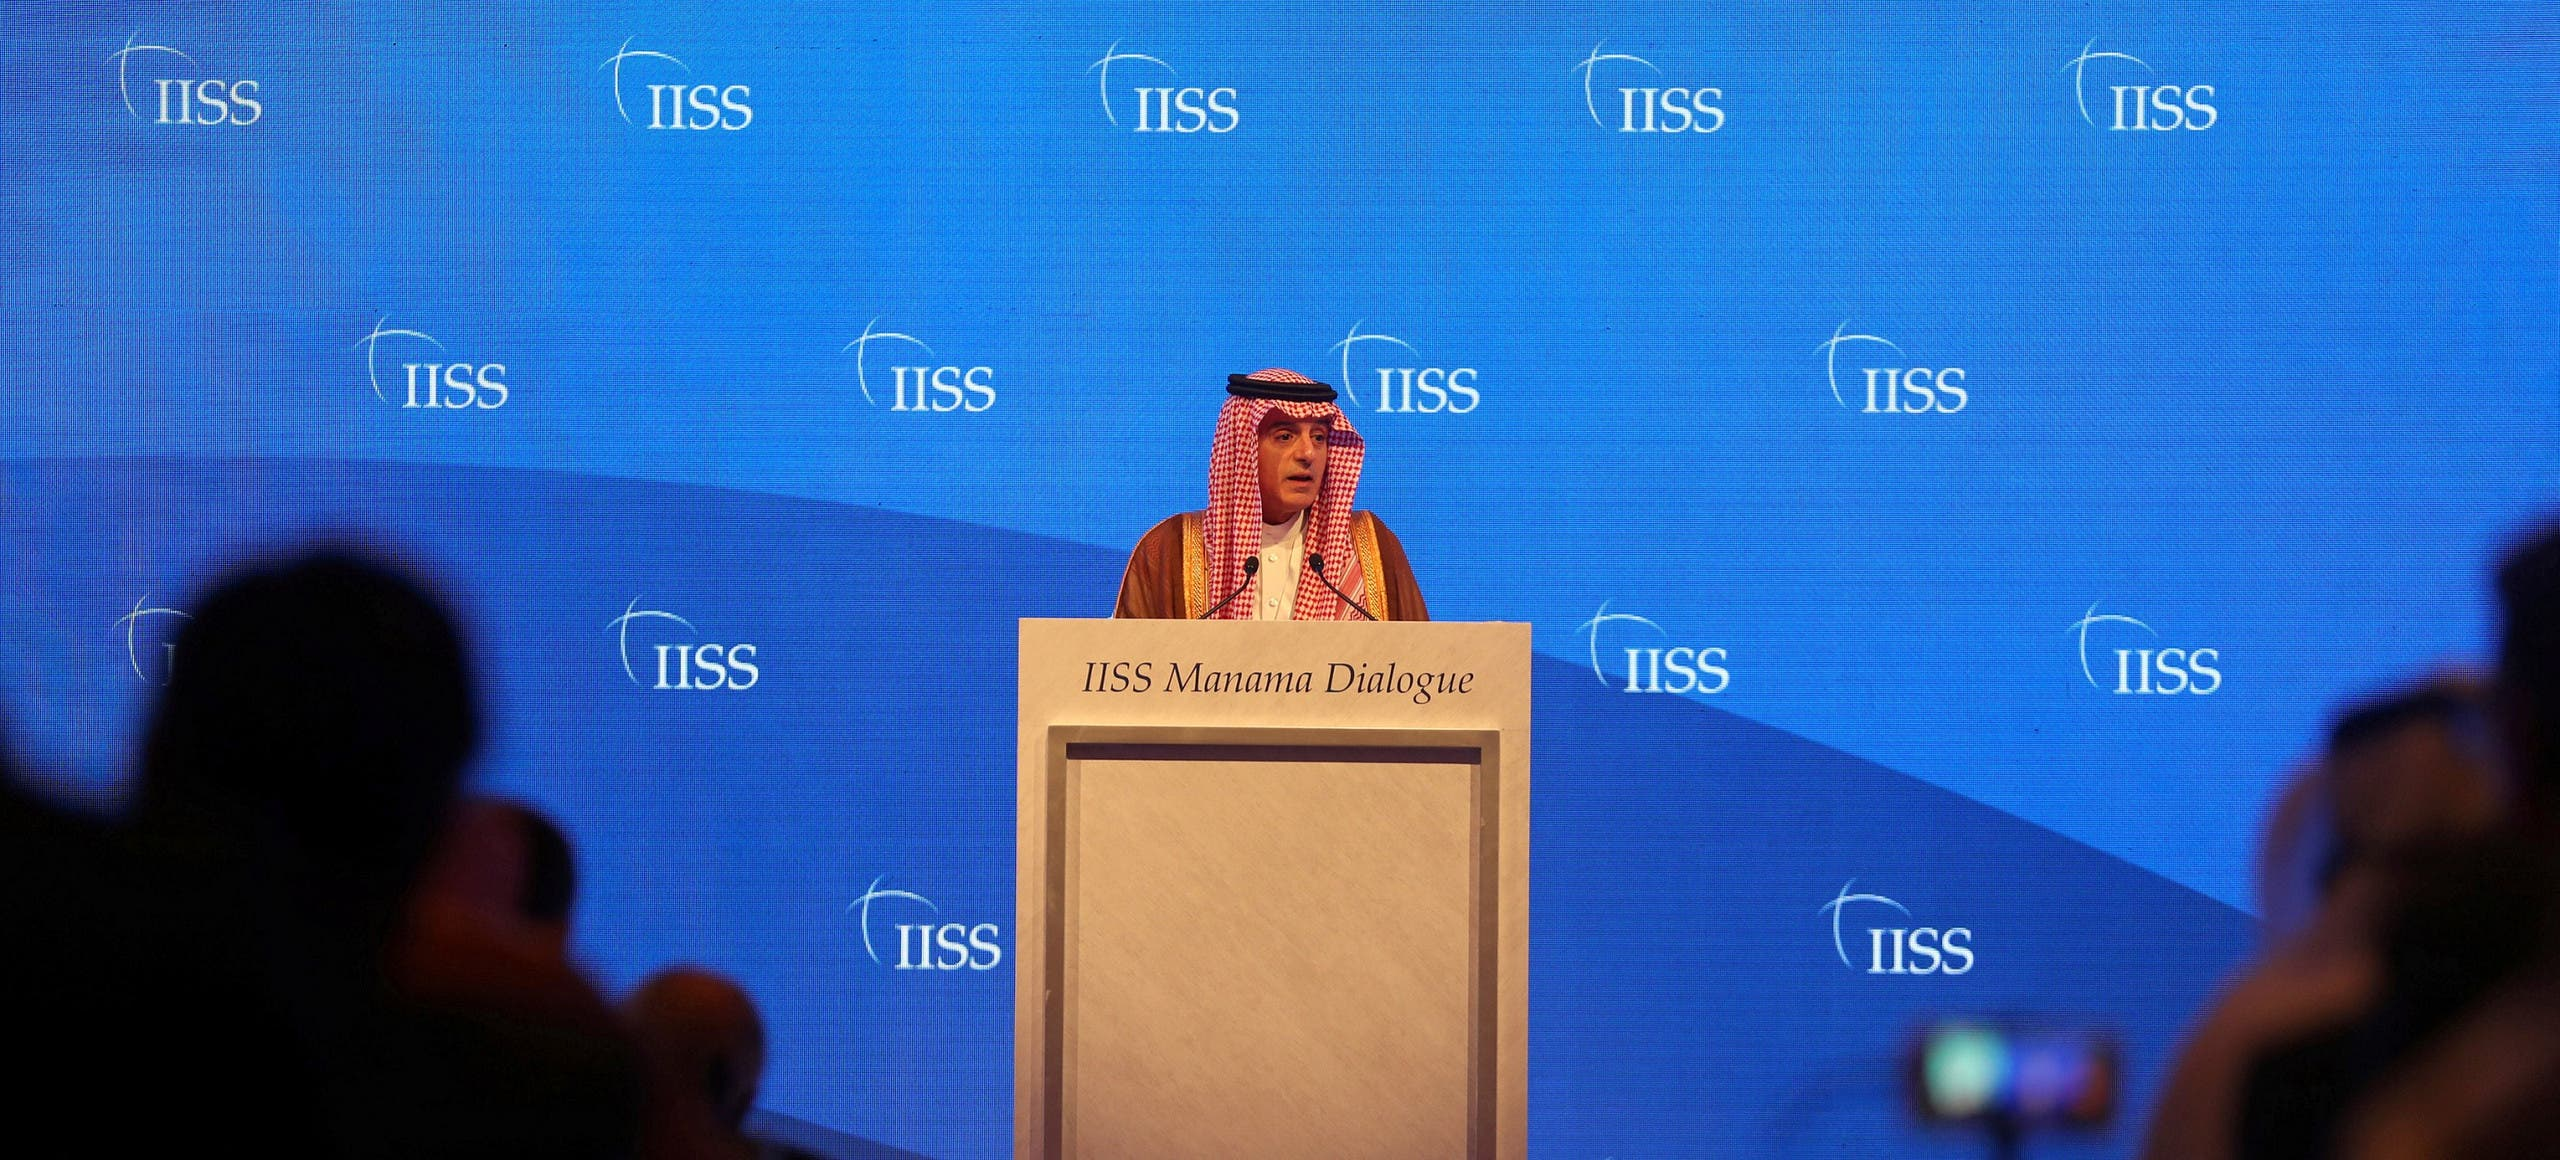 Saudi Arabia's Foreign Minister Adel bin Ahmed Al-Jubeir speaks during the second day of the 14th Manama dialogue. (Reuters)